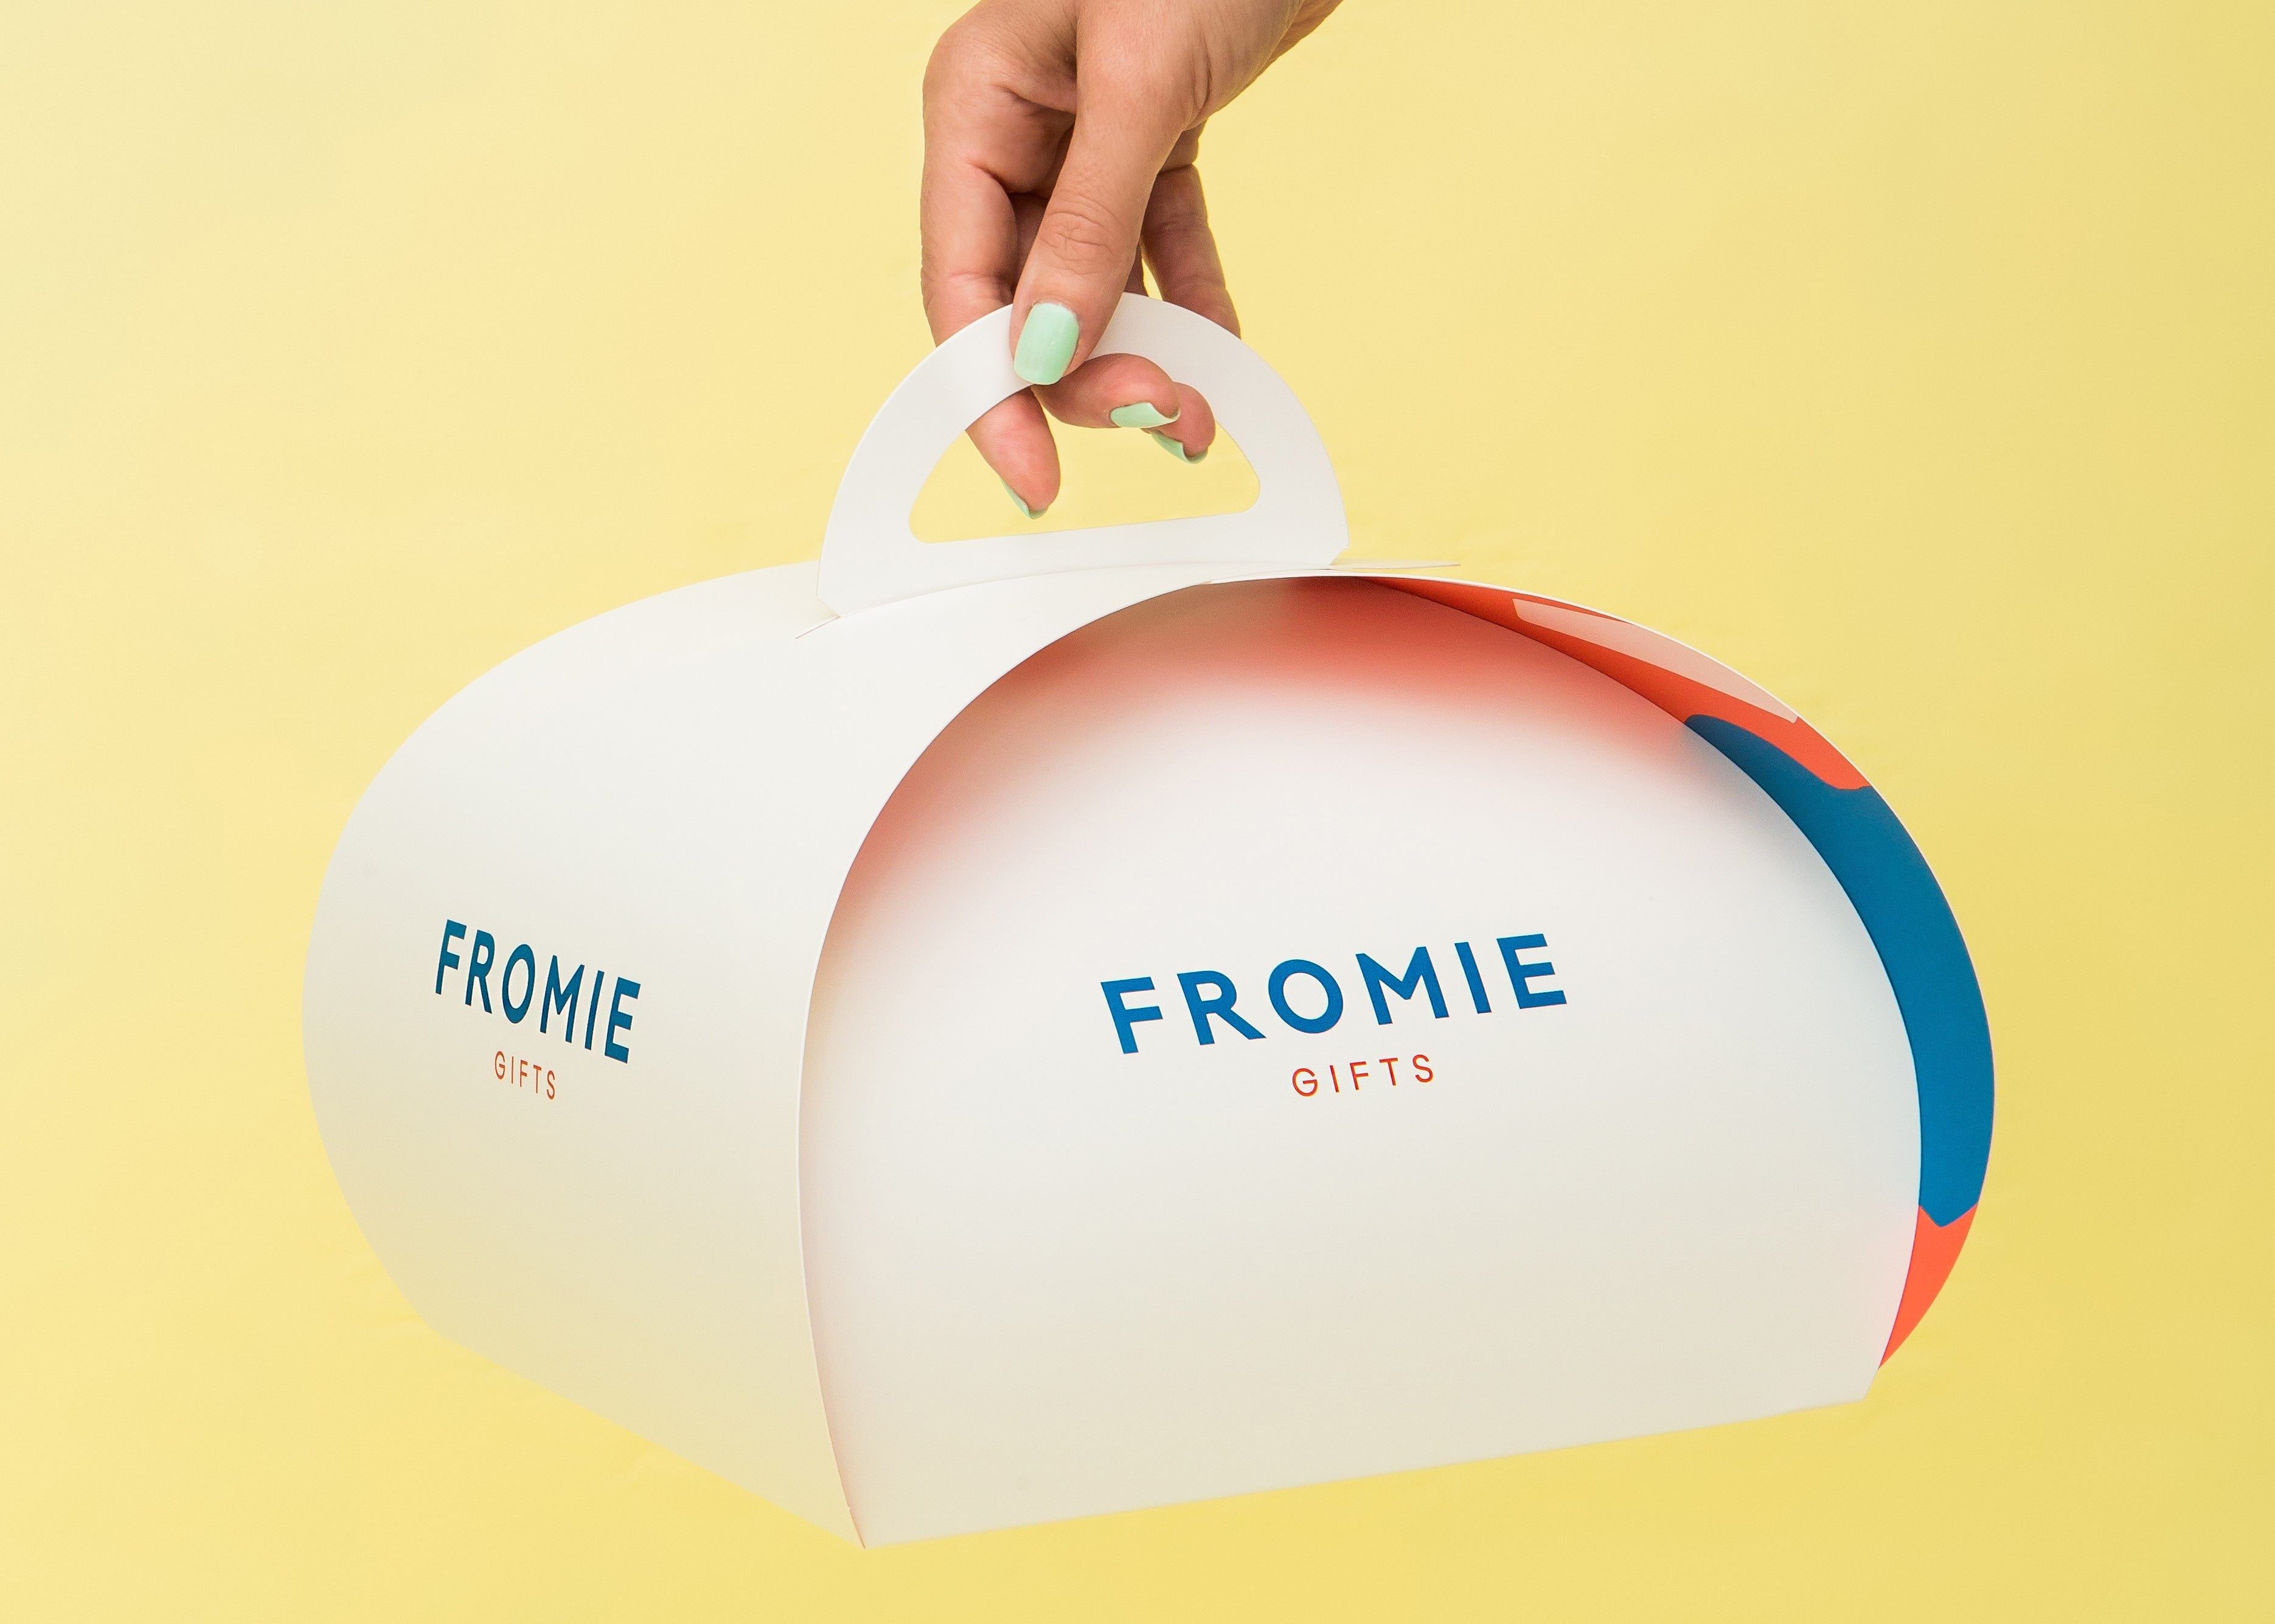 Fromie Gifts Gift Box